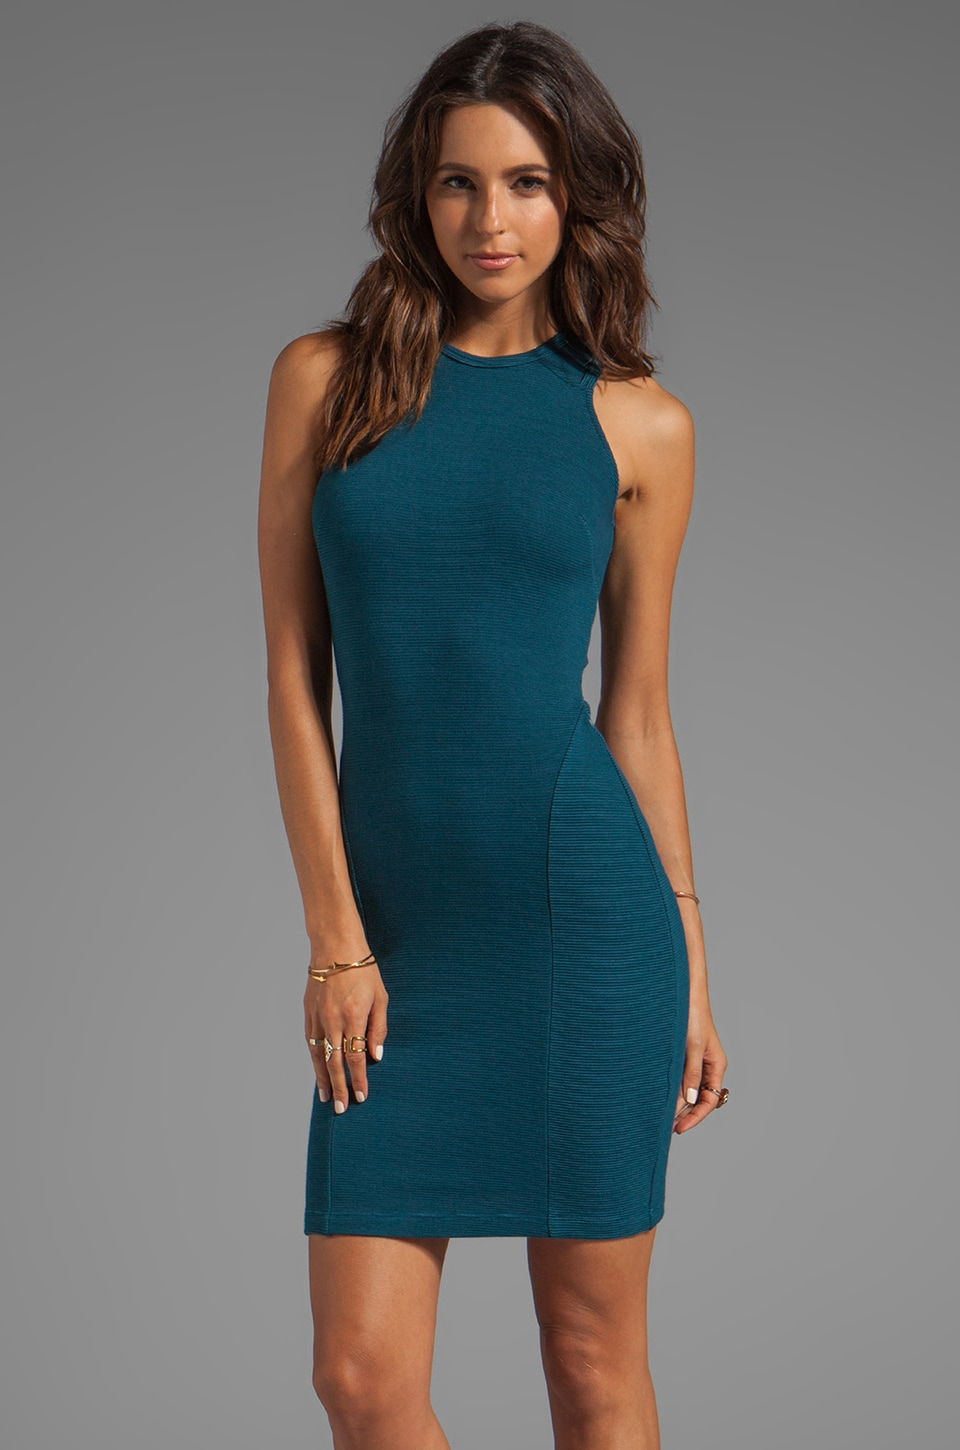 Kain Mini Rib Winona Dress in Dark Turquoise